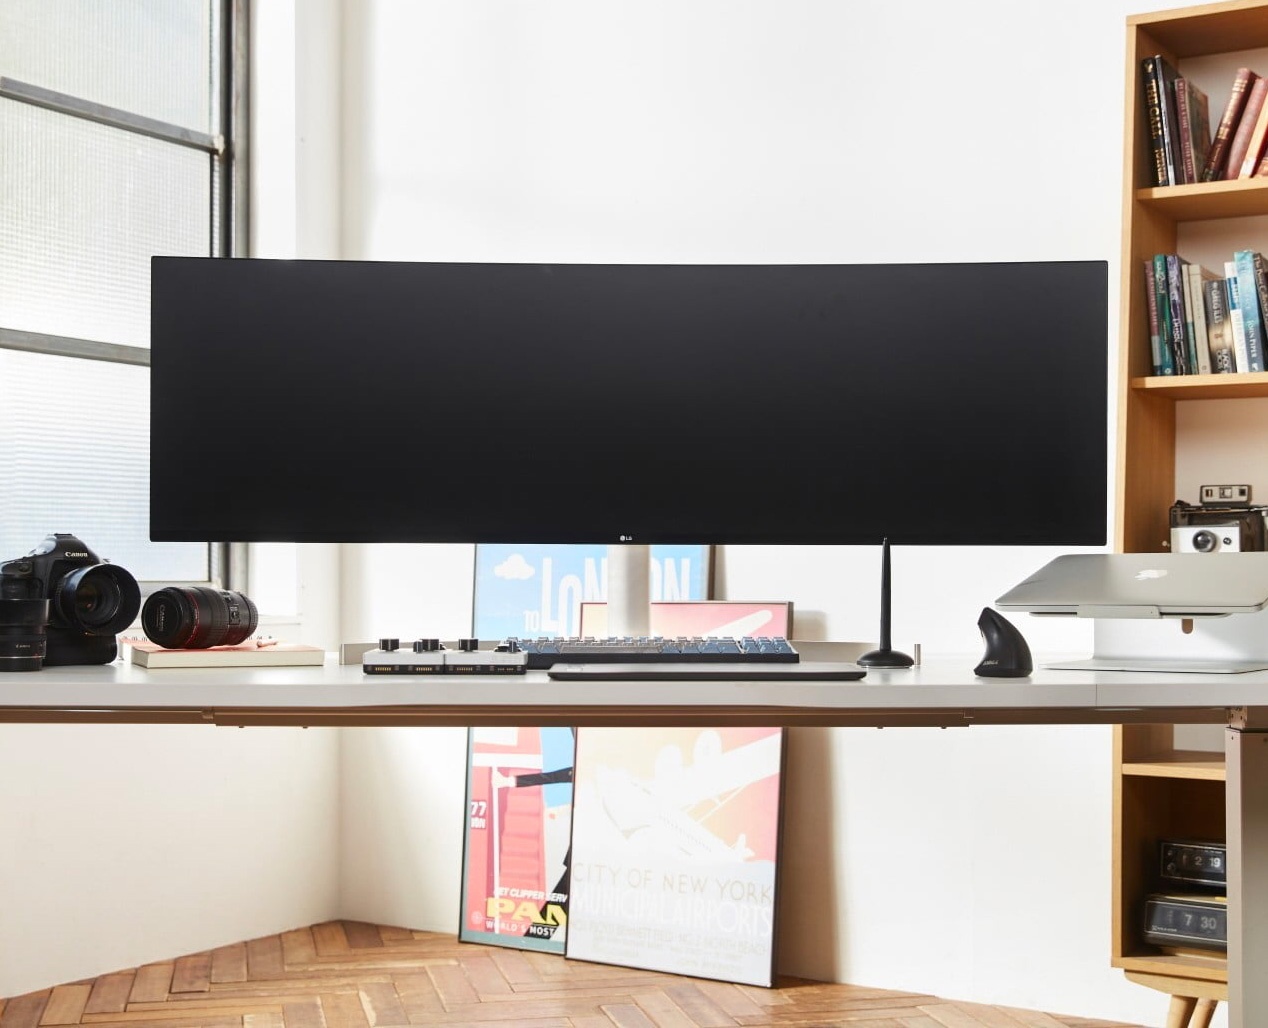 LG Has Created a Curved, 49-Inch UltraWide Monitor at werd.com